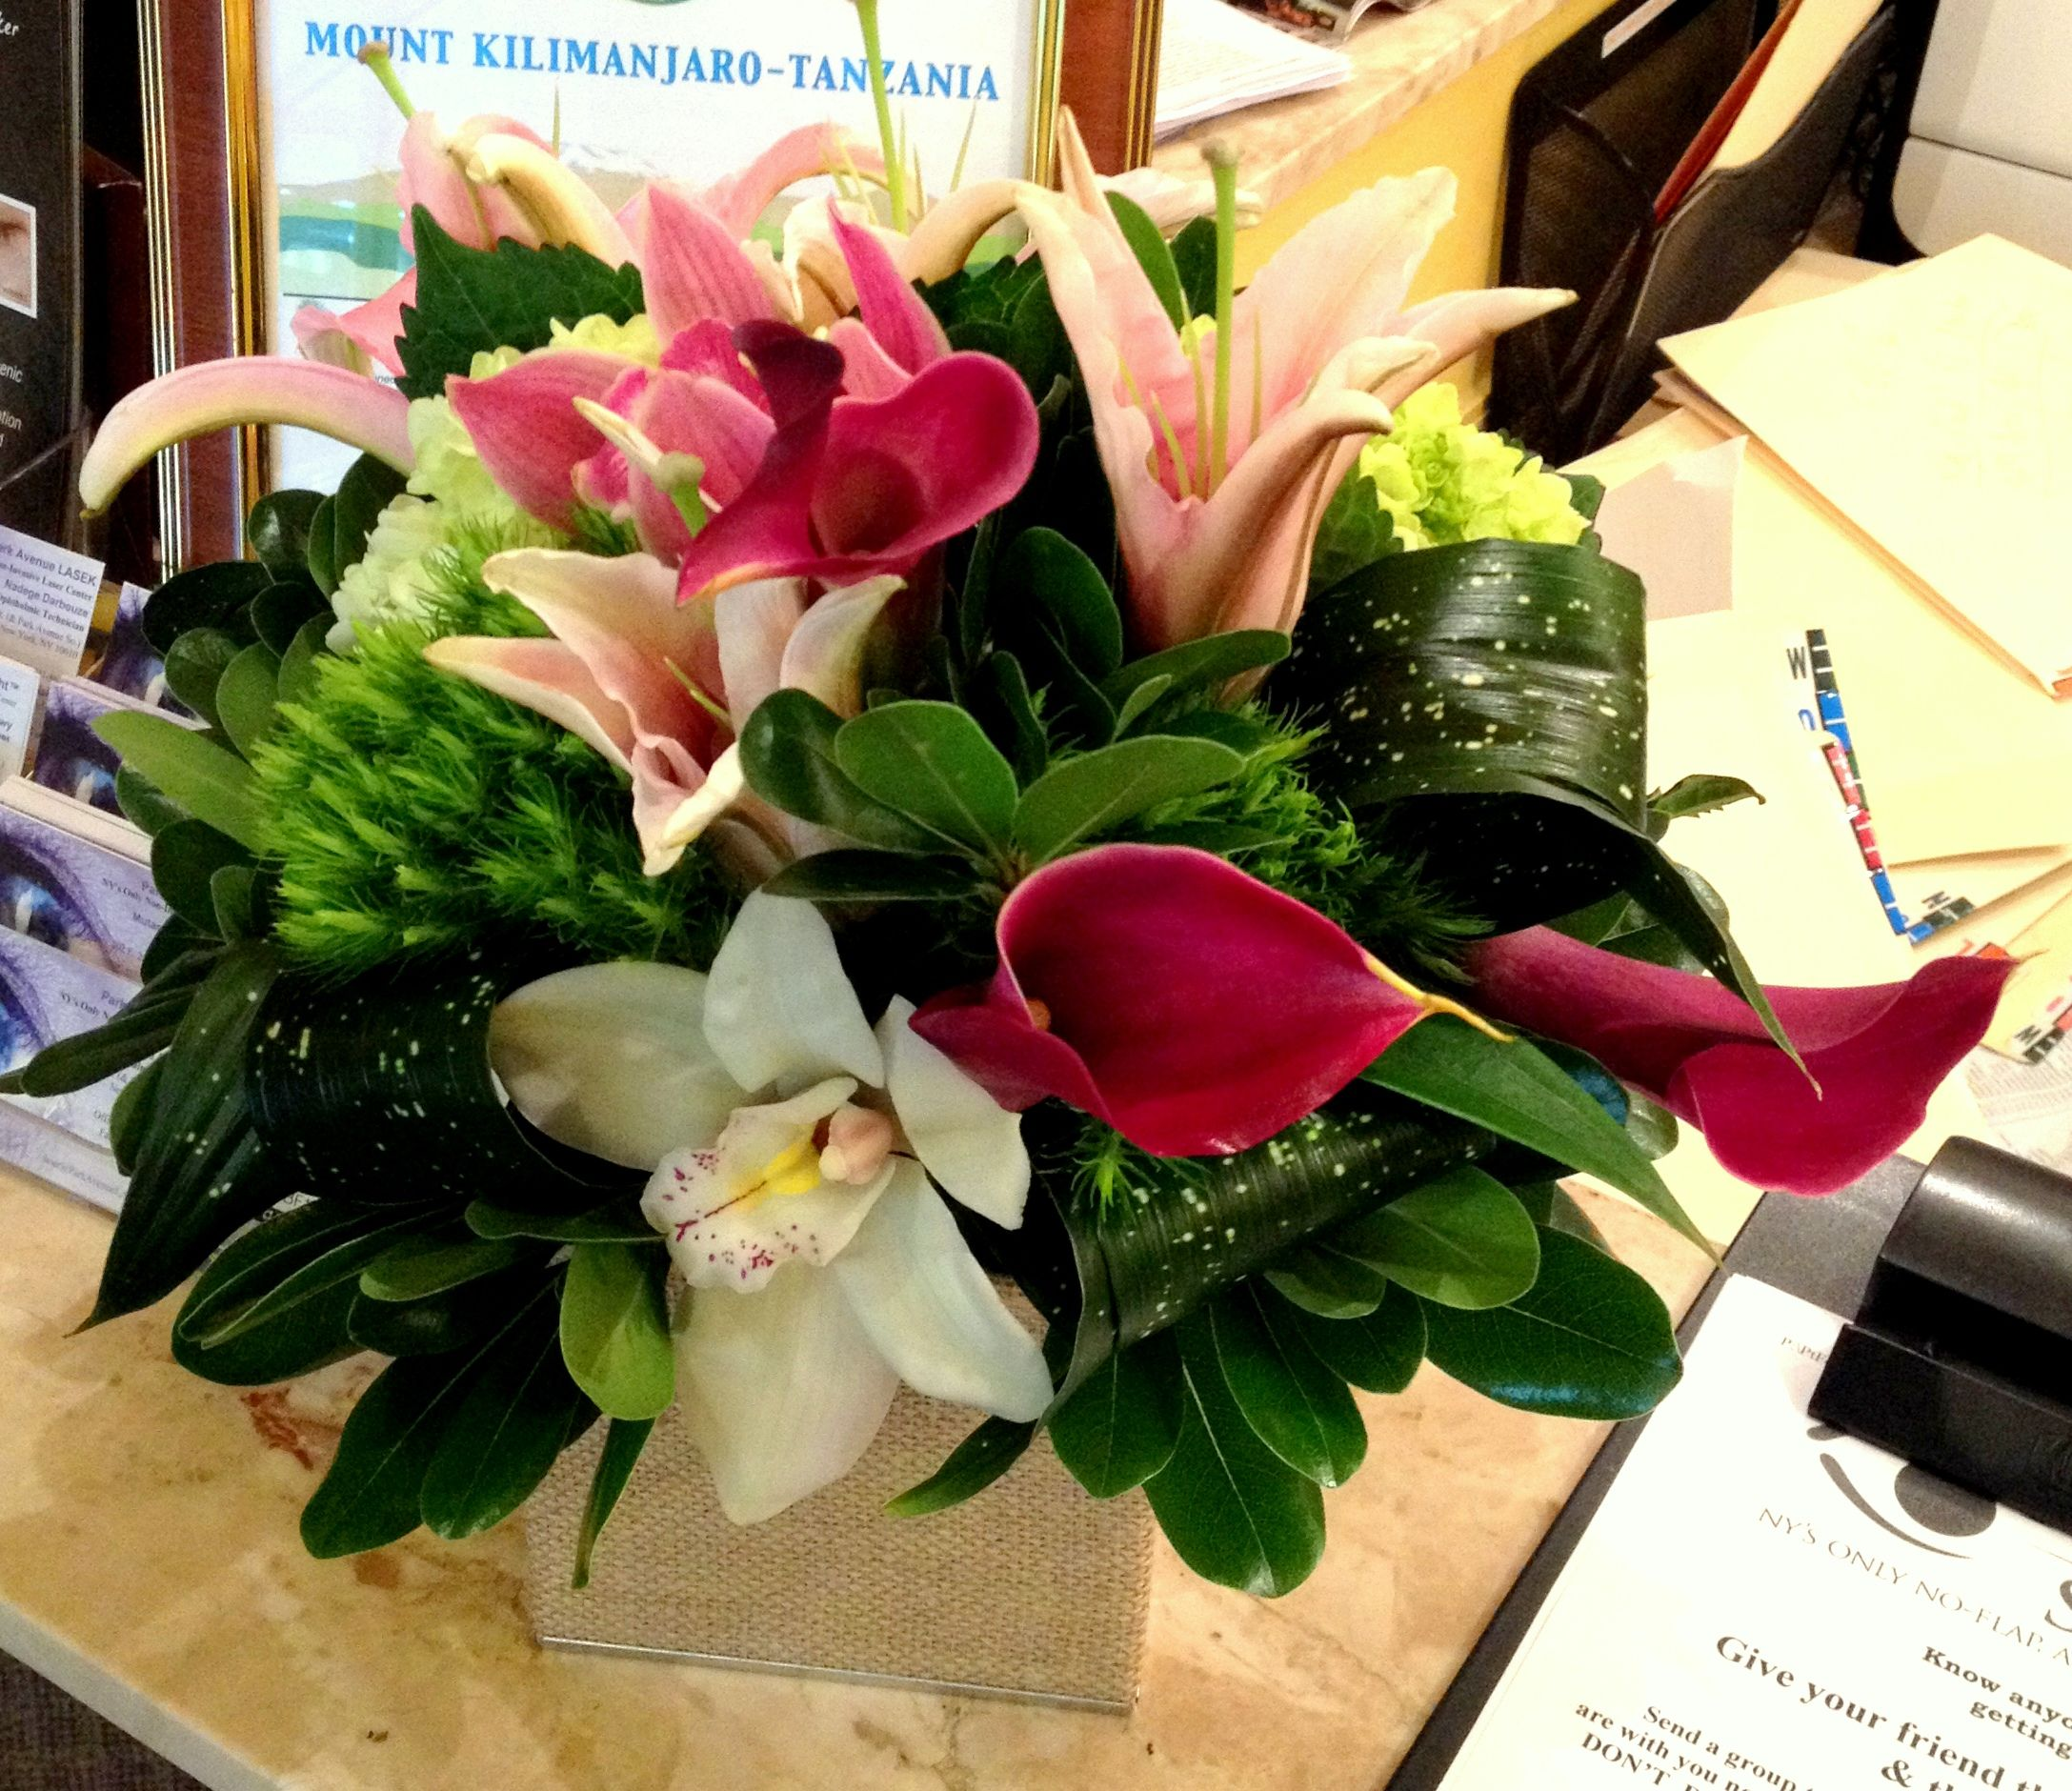 Receiving flowers at work is sure to brighten the day of